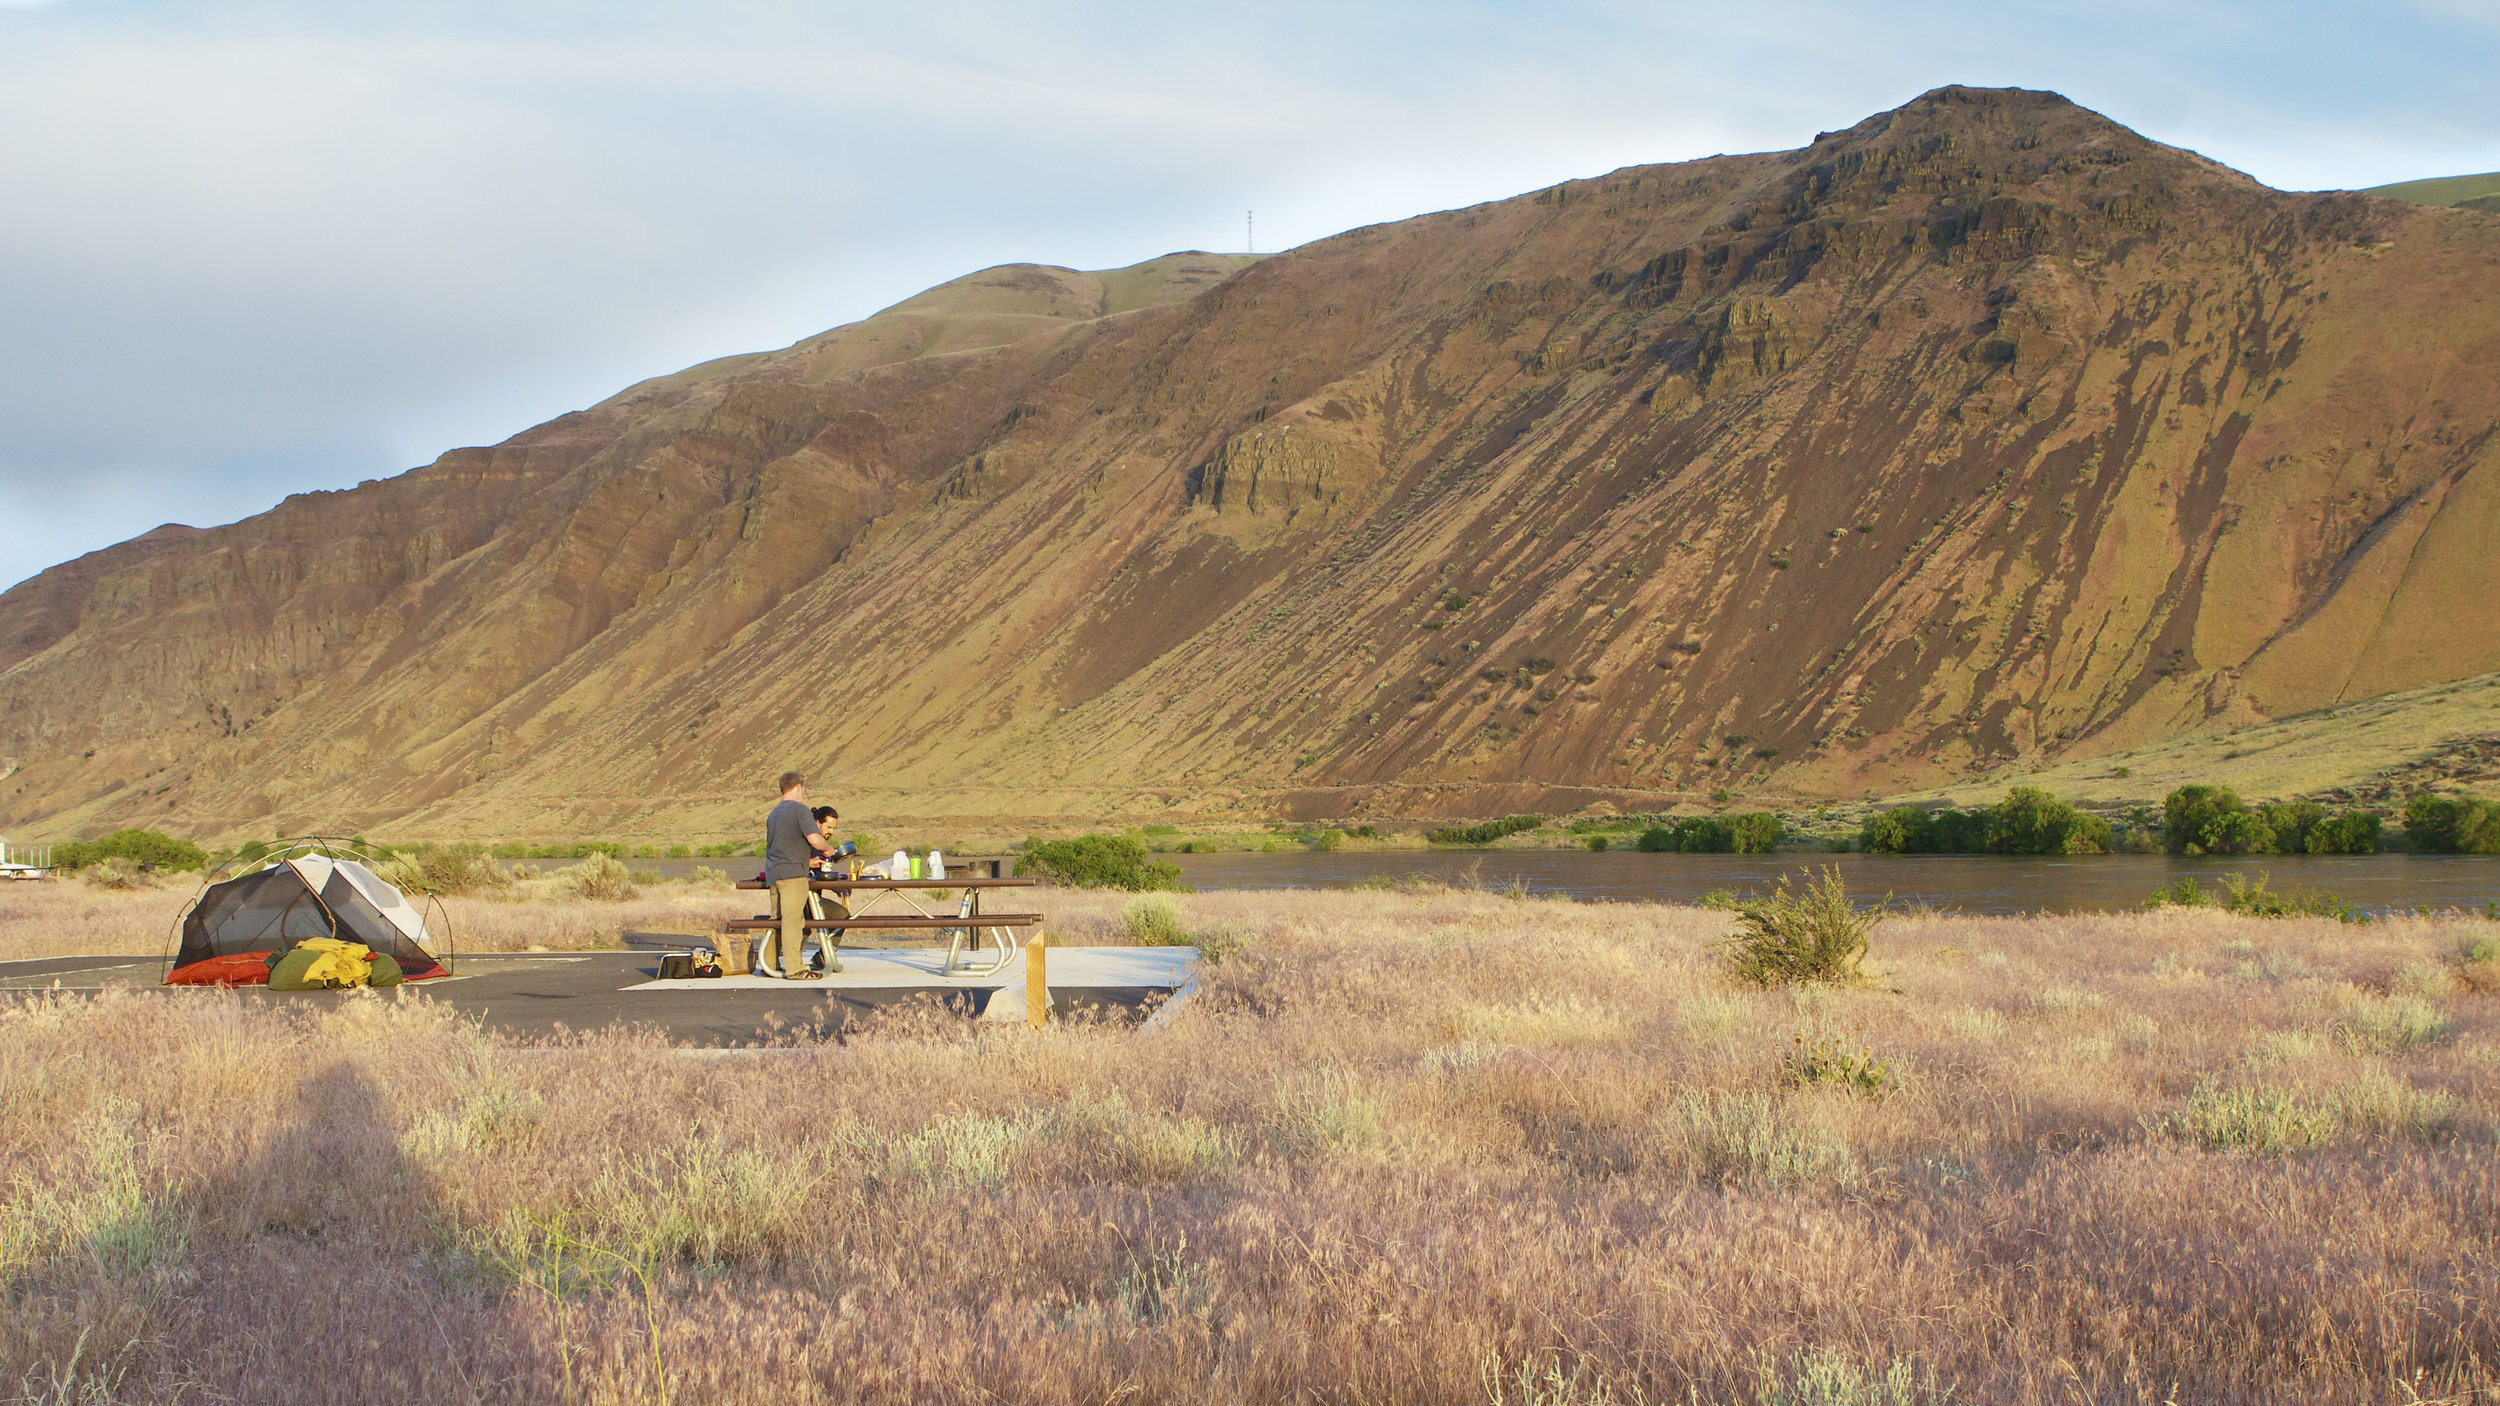 A family camps near the Columbia River in the Hanford Reach National Monument. Photo by Michael Deckert.